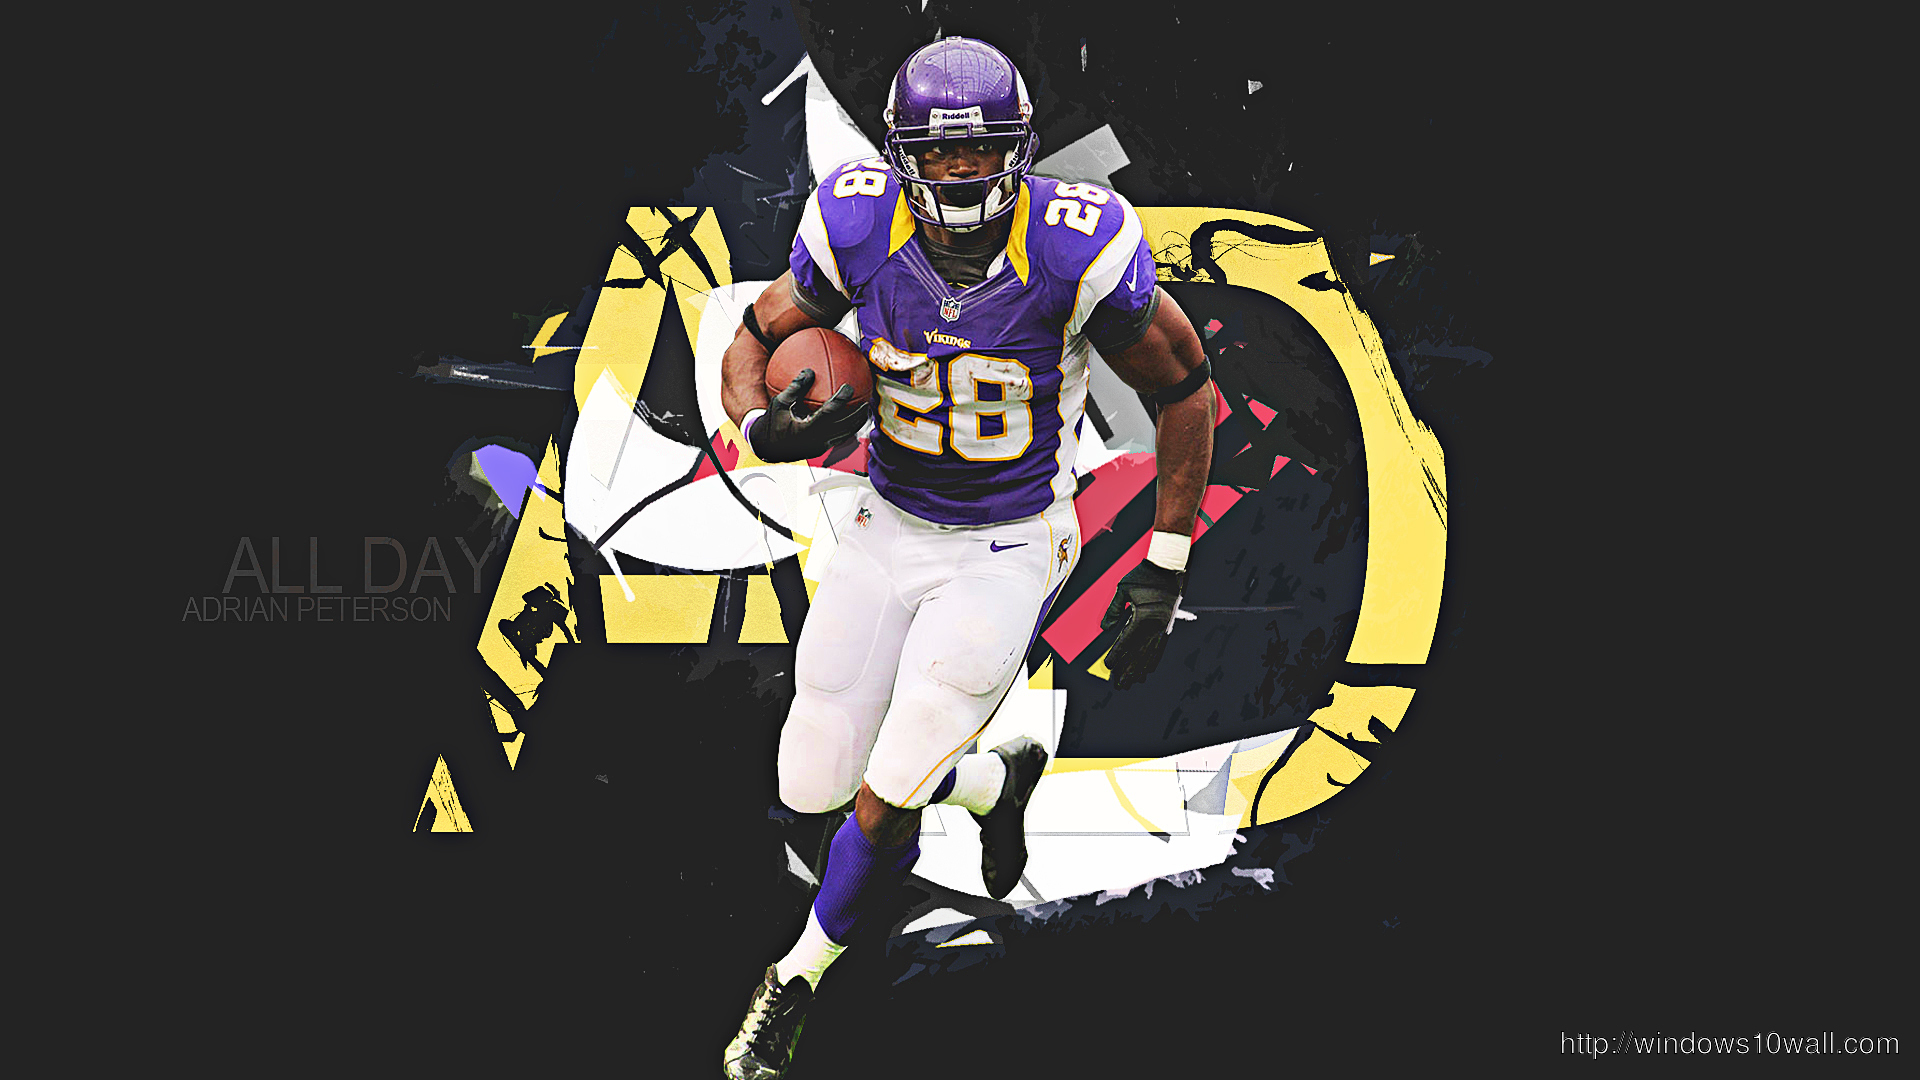 adrian-peterson-yards-2013